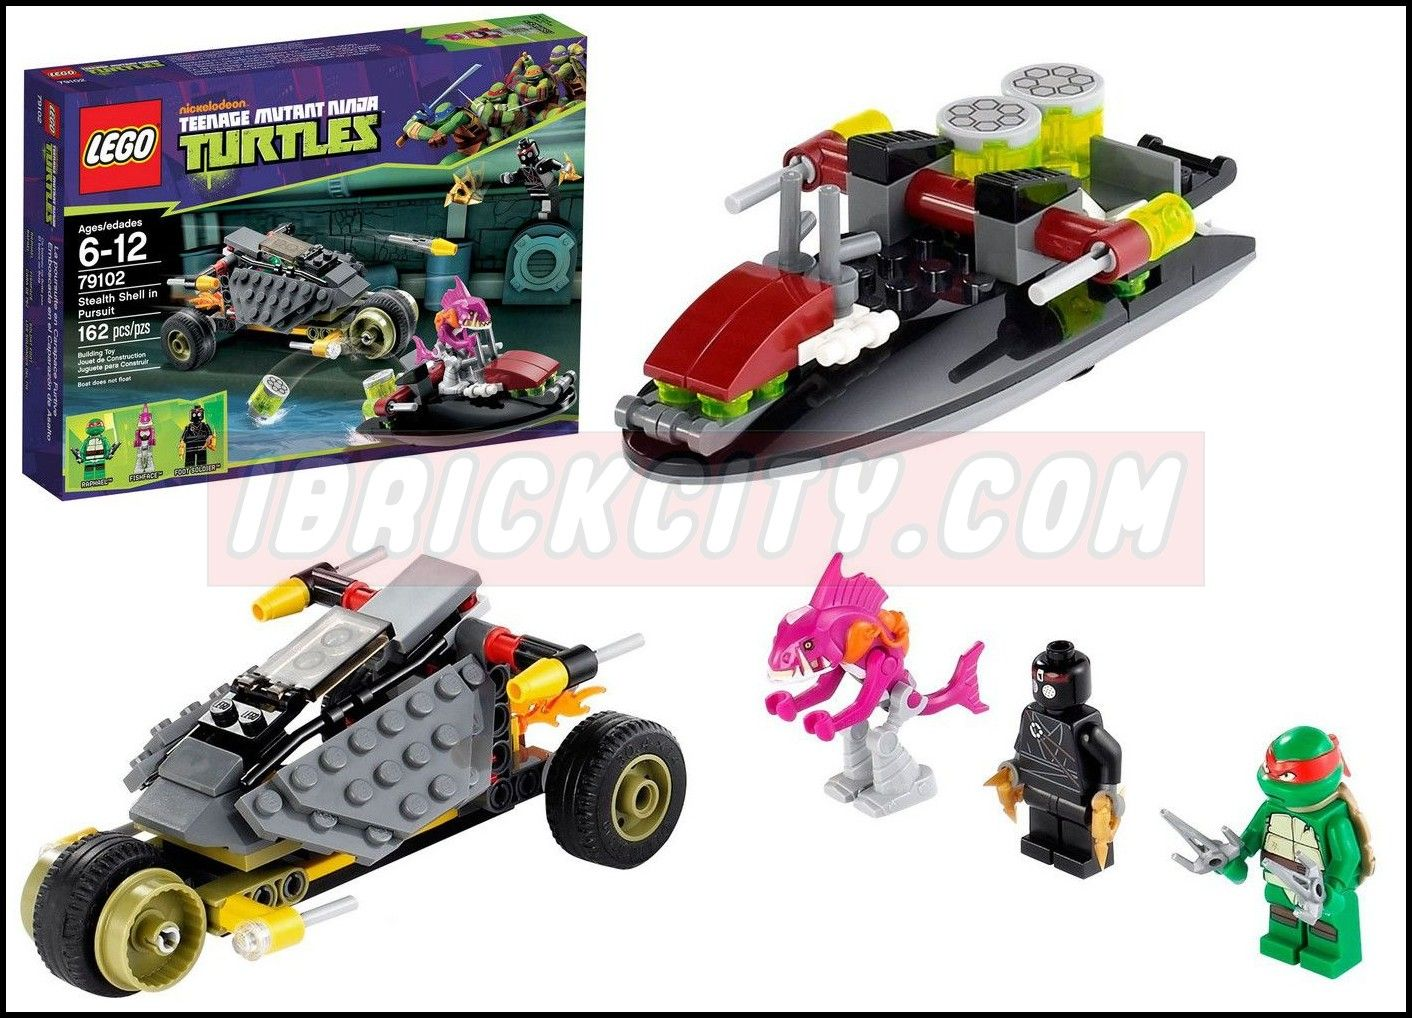 Lego 79102 Stealth Shell In Pursuit I Brick City